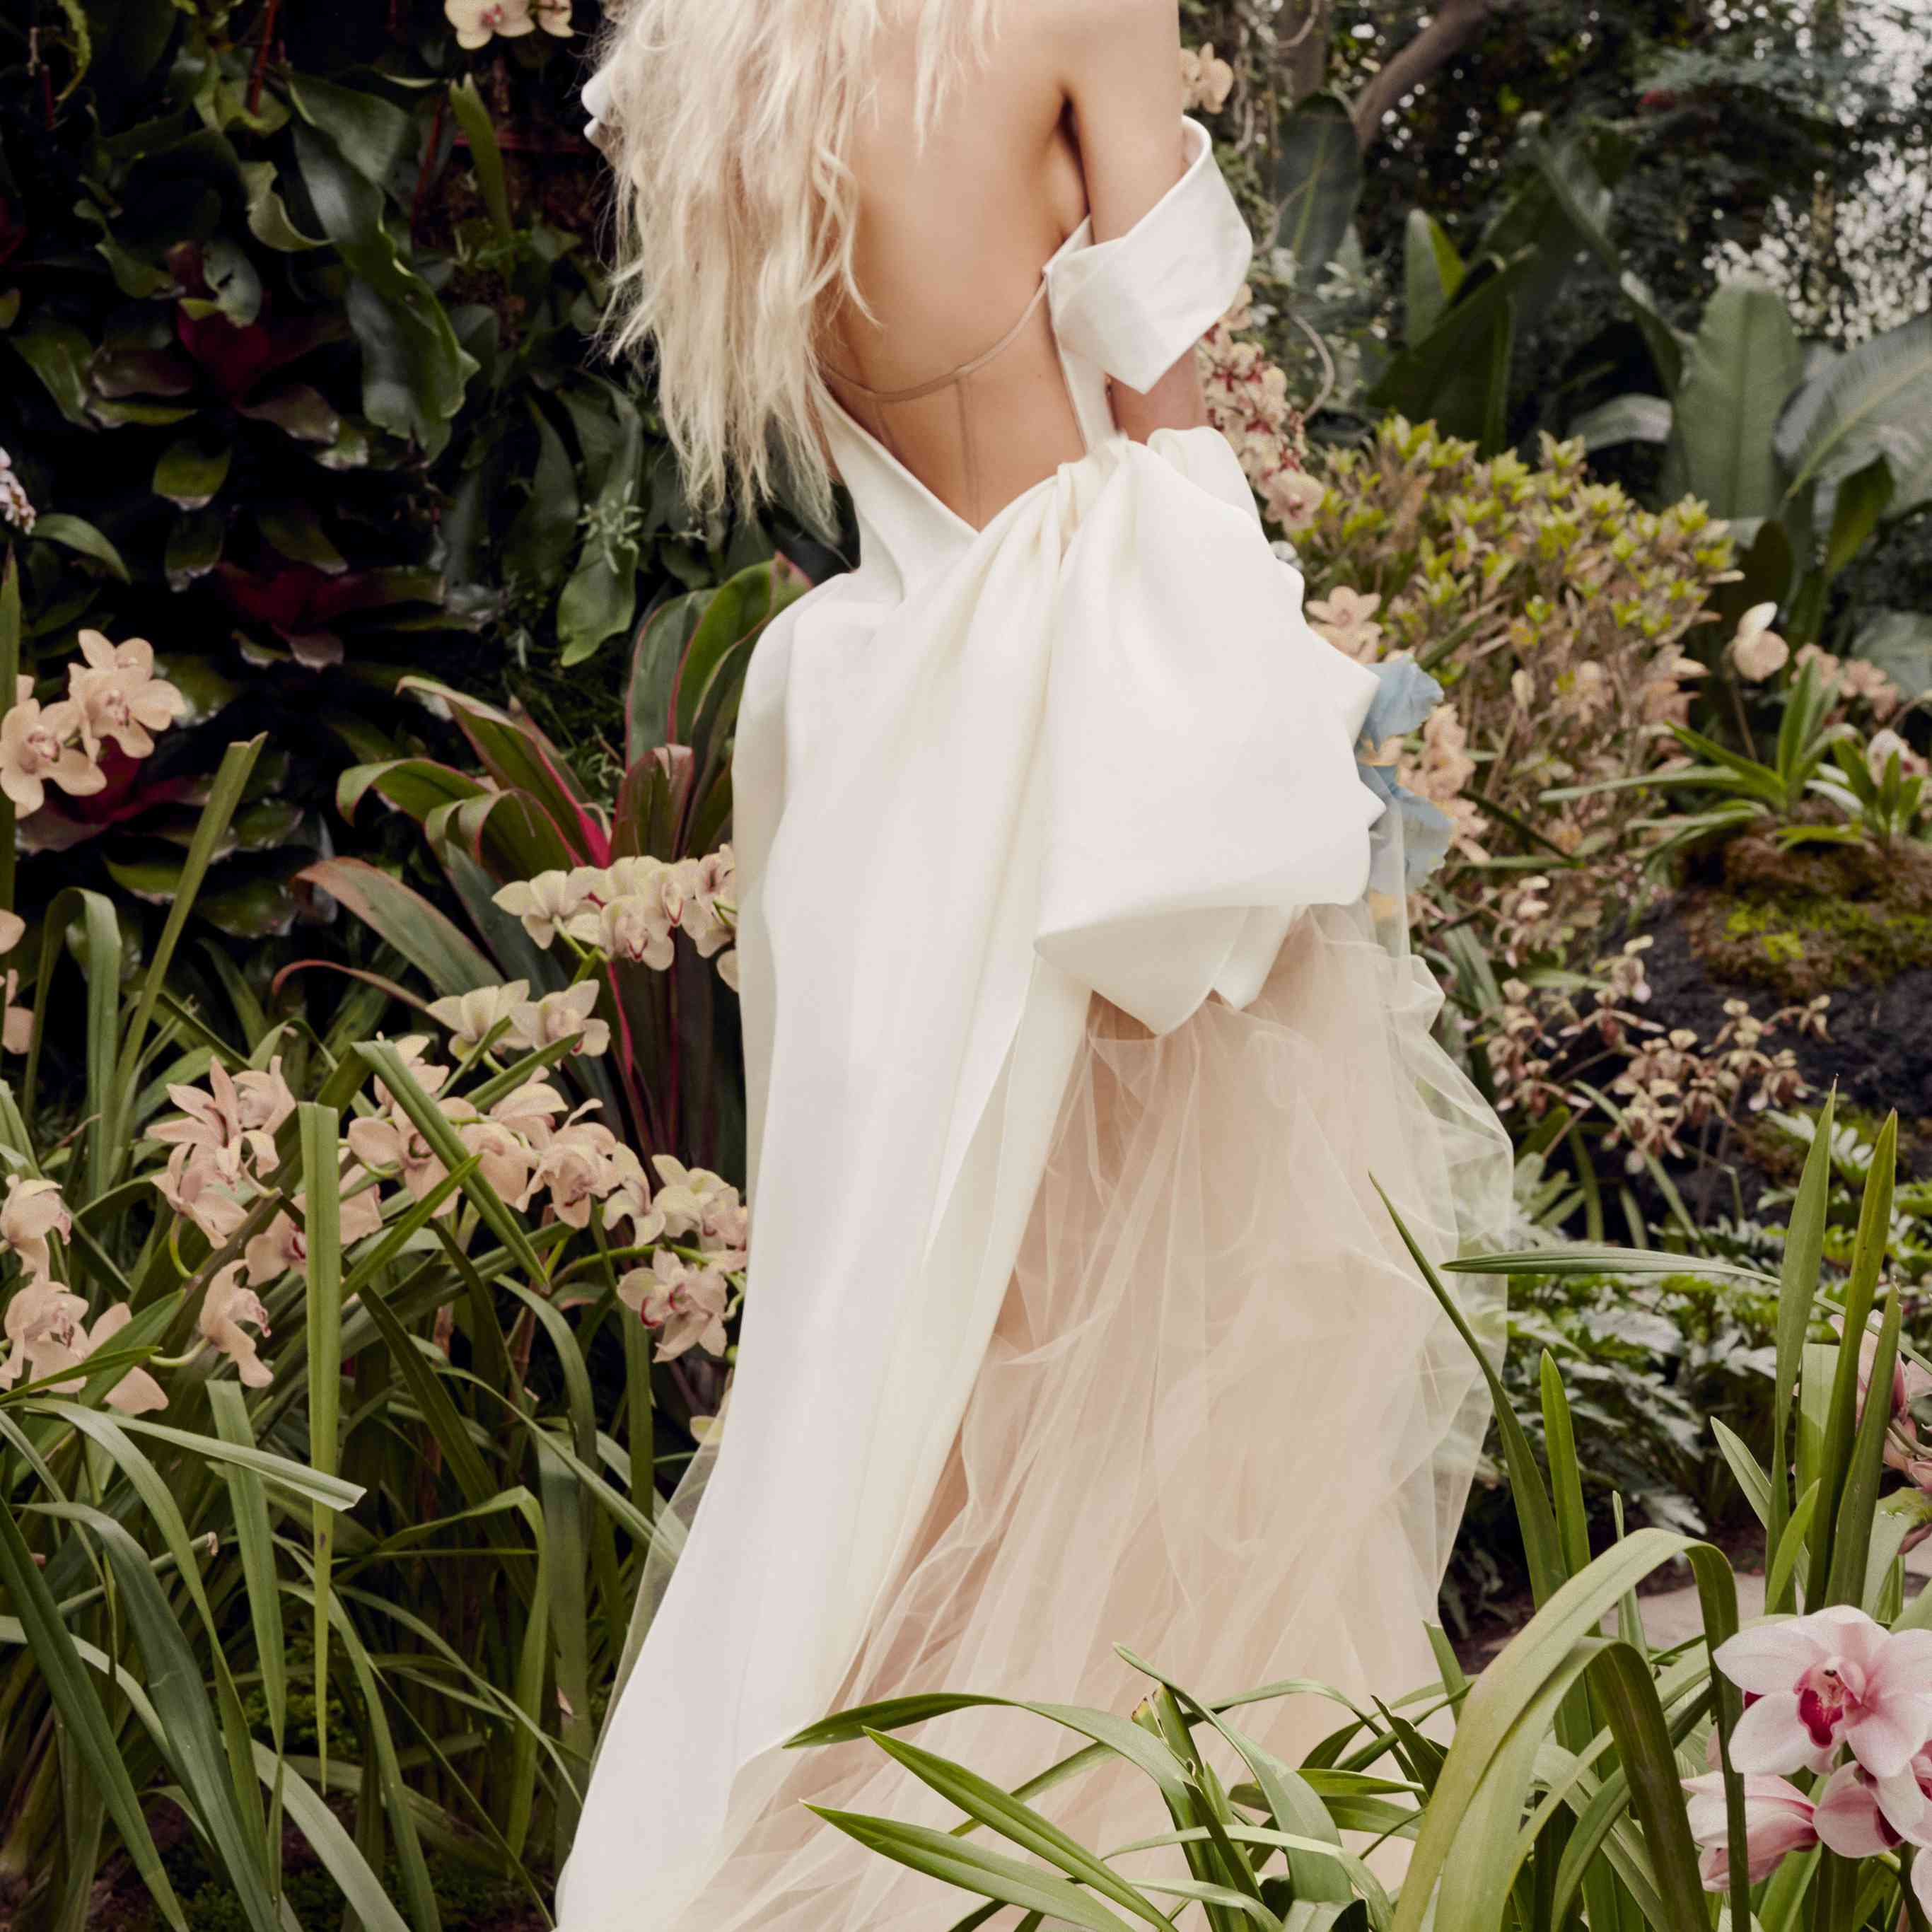 Model in a white one-shoulder gown with nude tulle exposed skirt